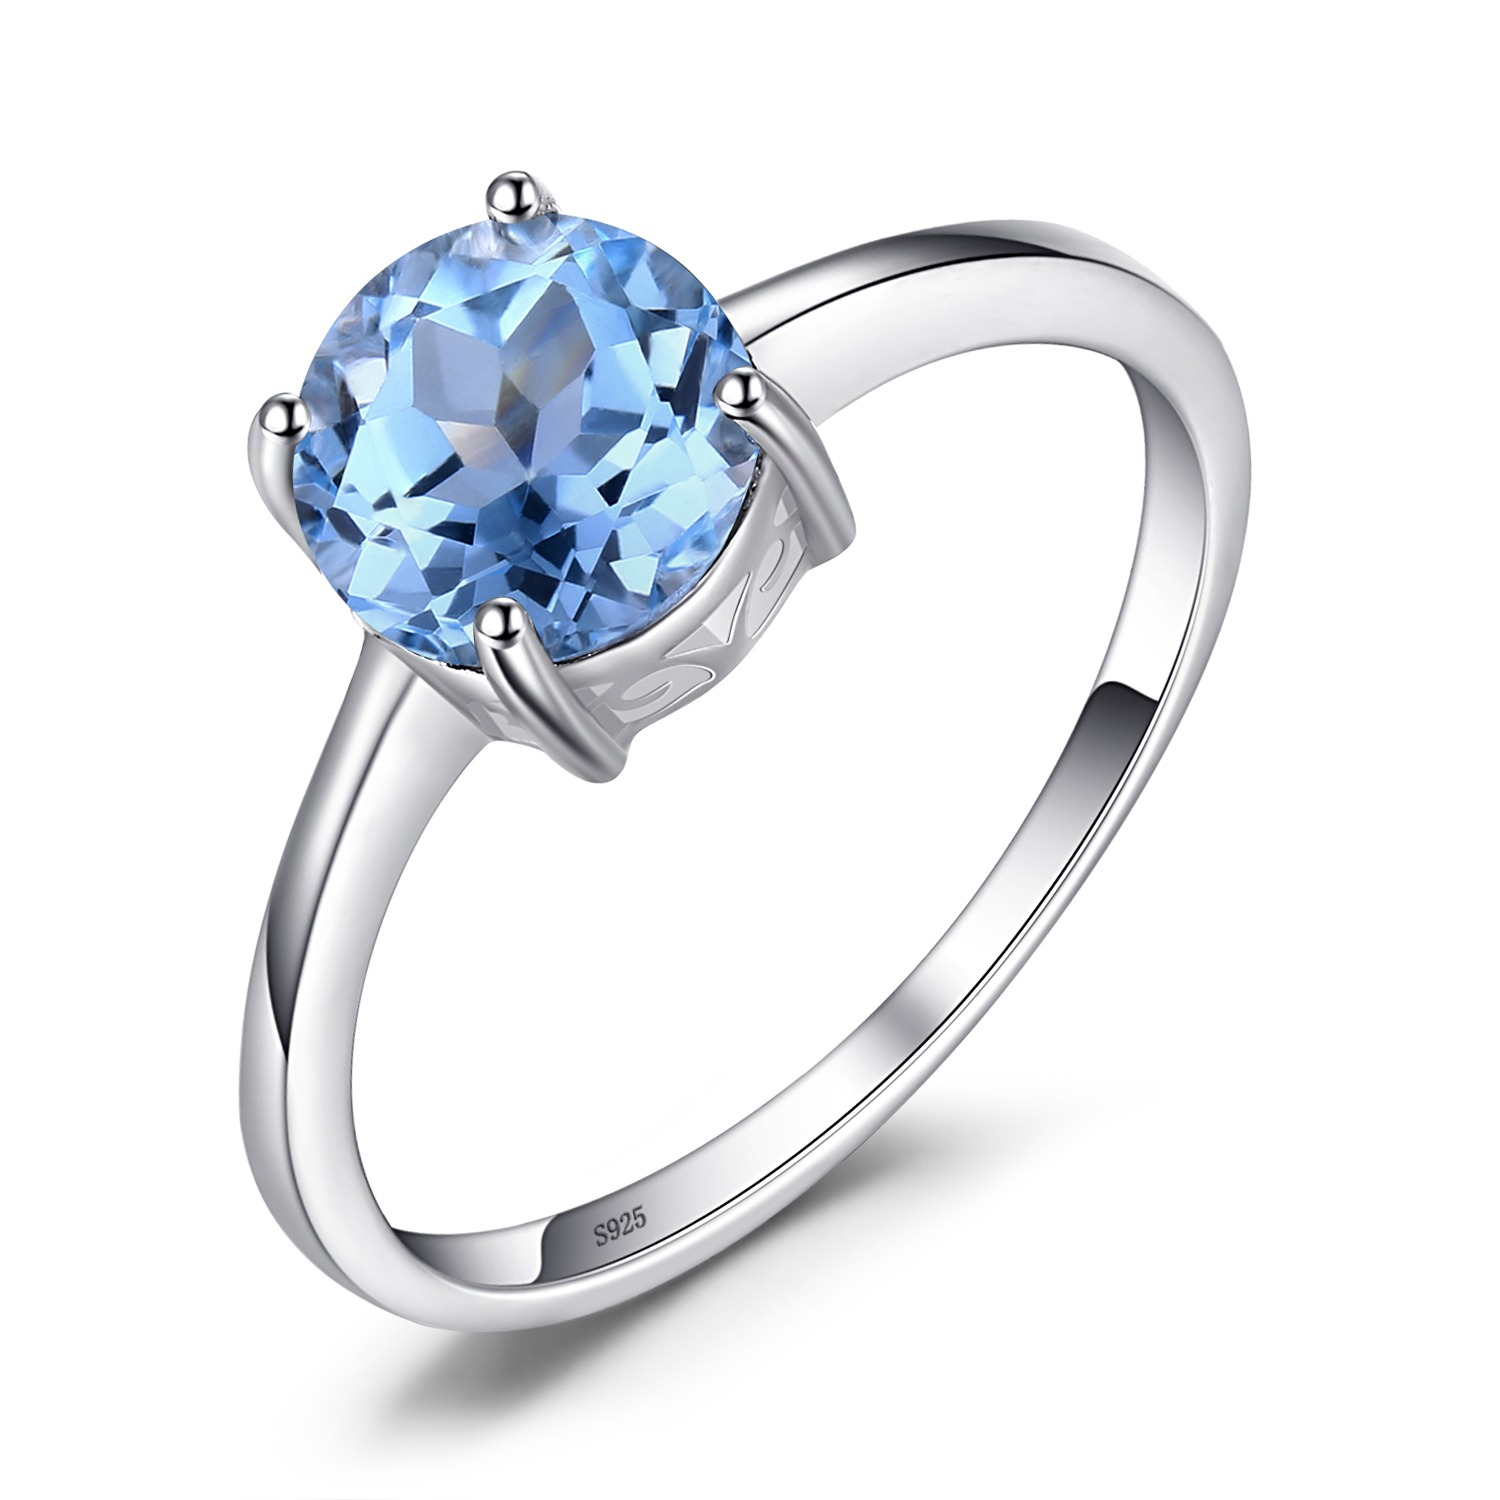 Hutang Stone Jewelry 2 73ct Natural Gemstone London Blue Topaz Solid